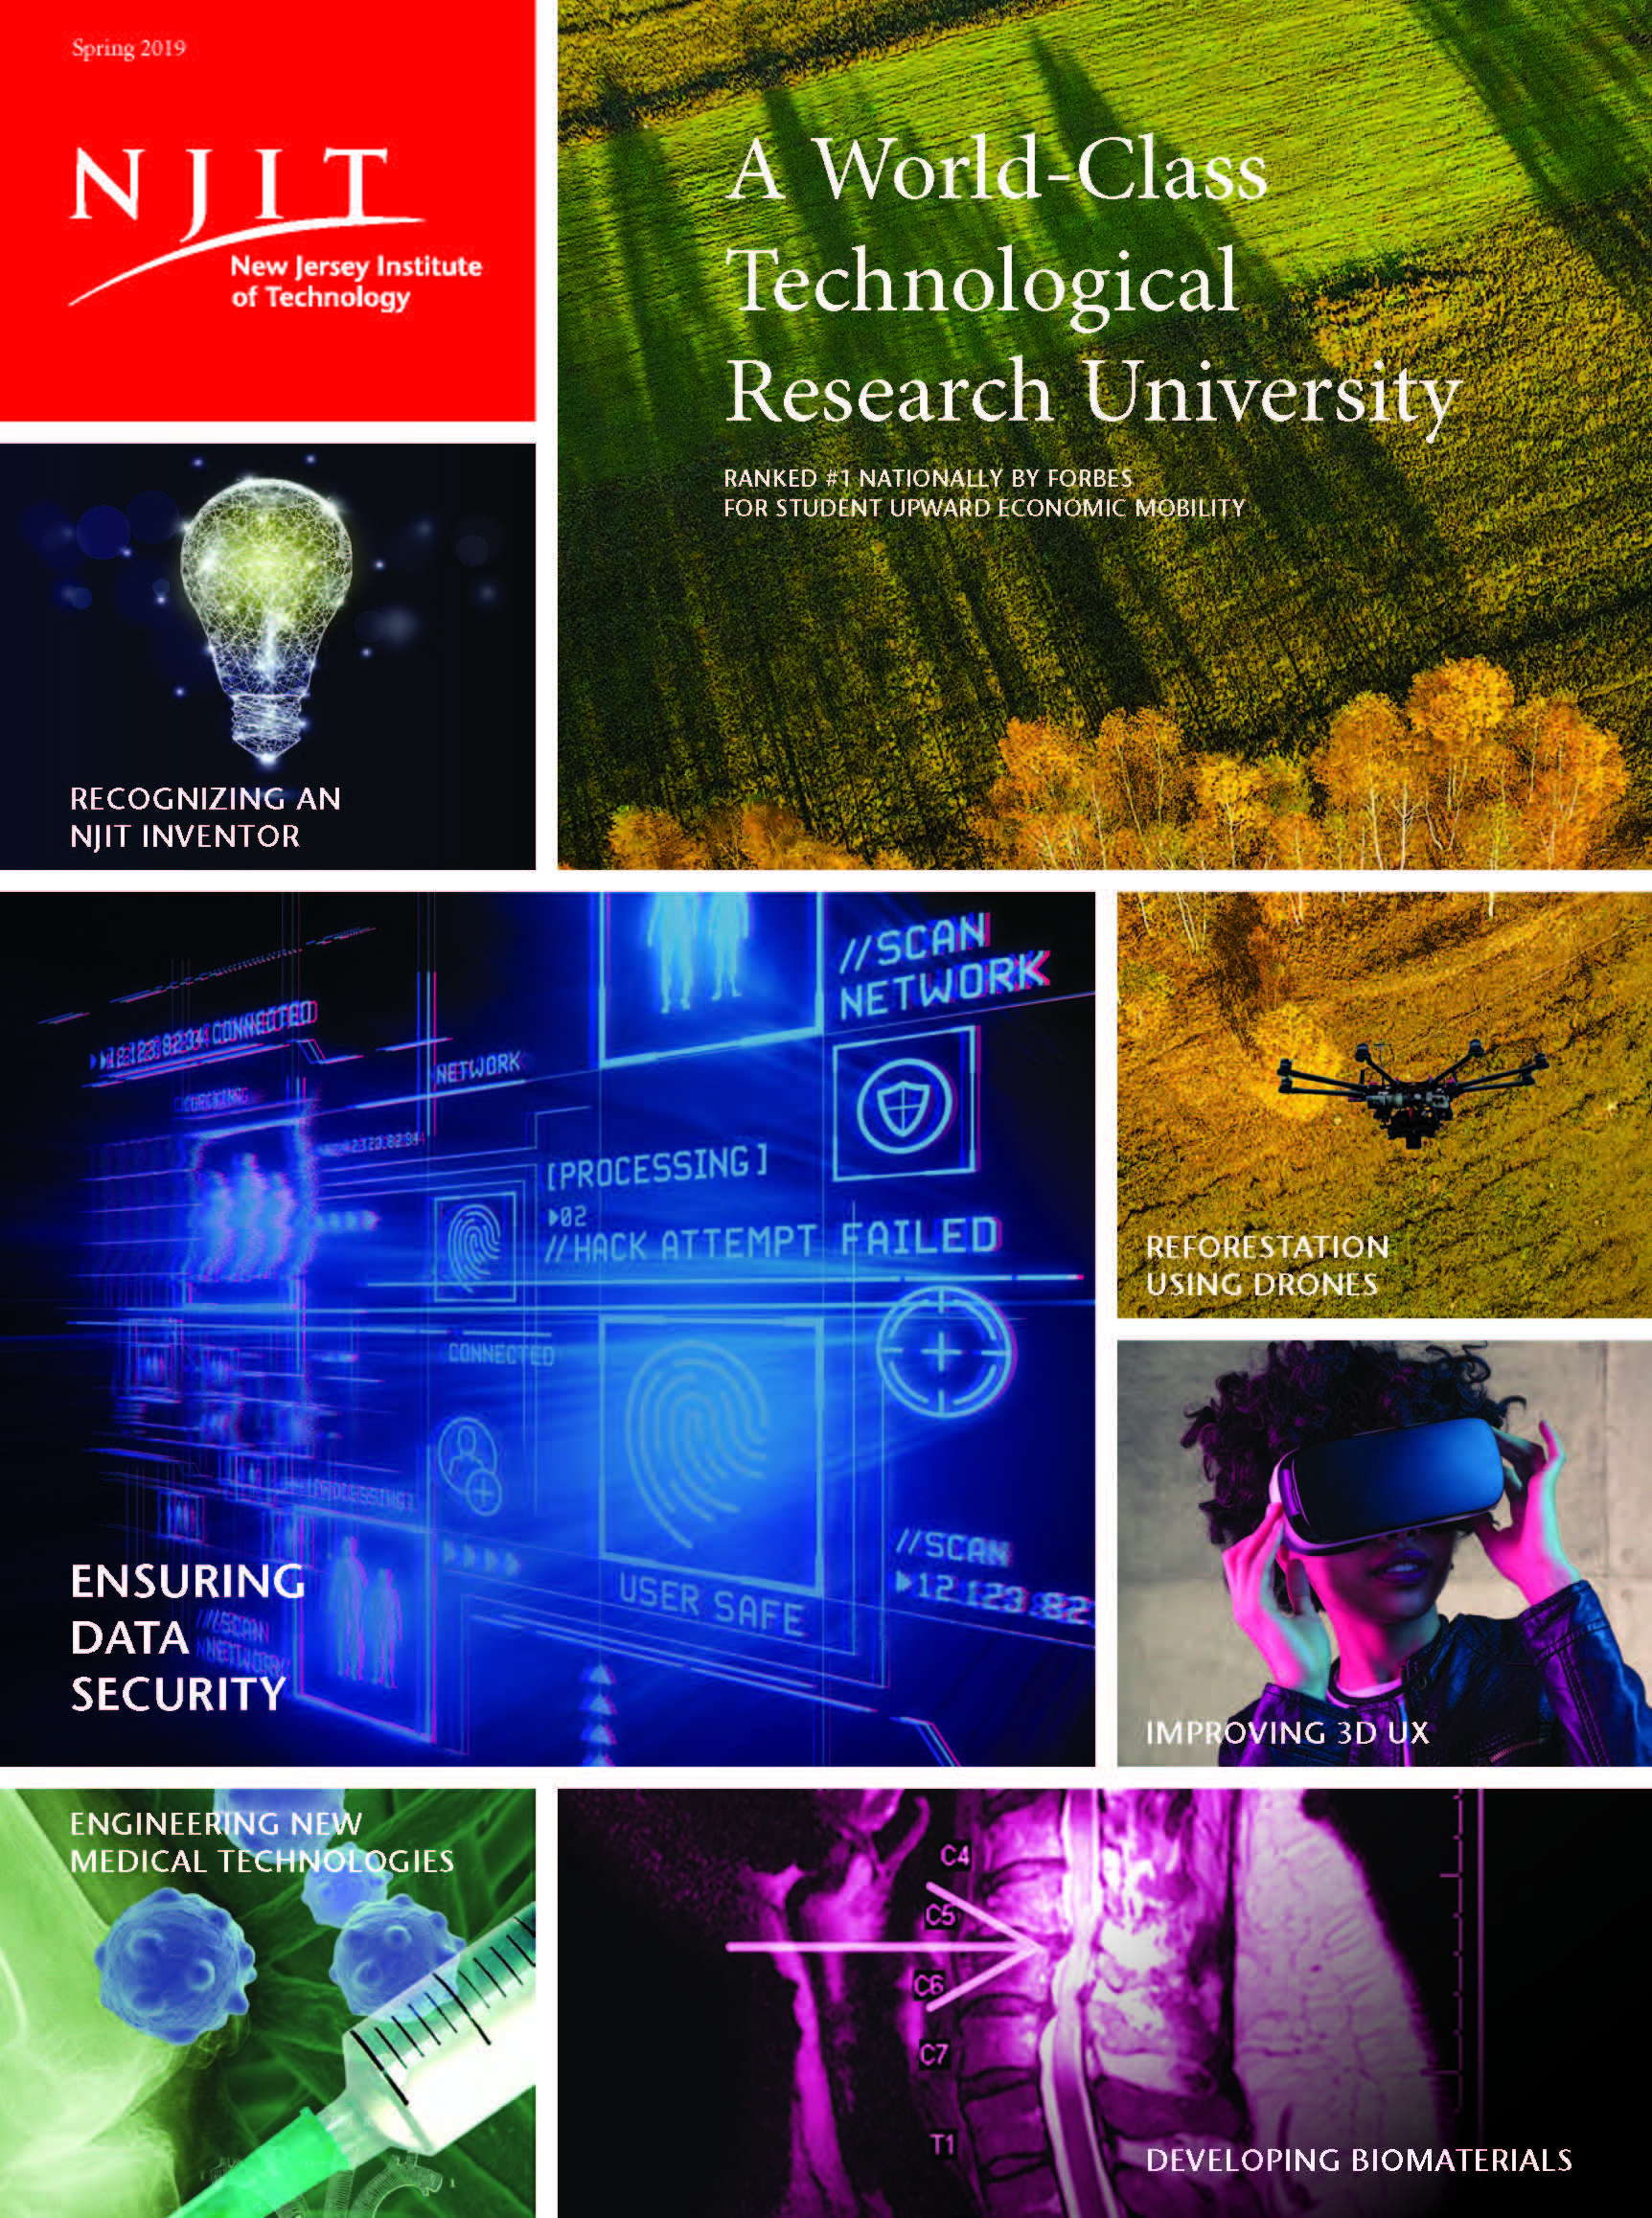 Spring 2019 Research Snapshot